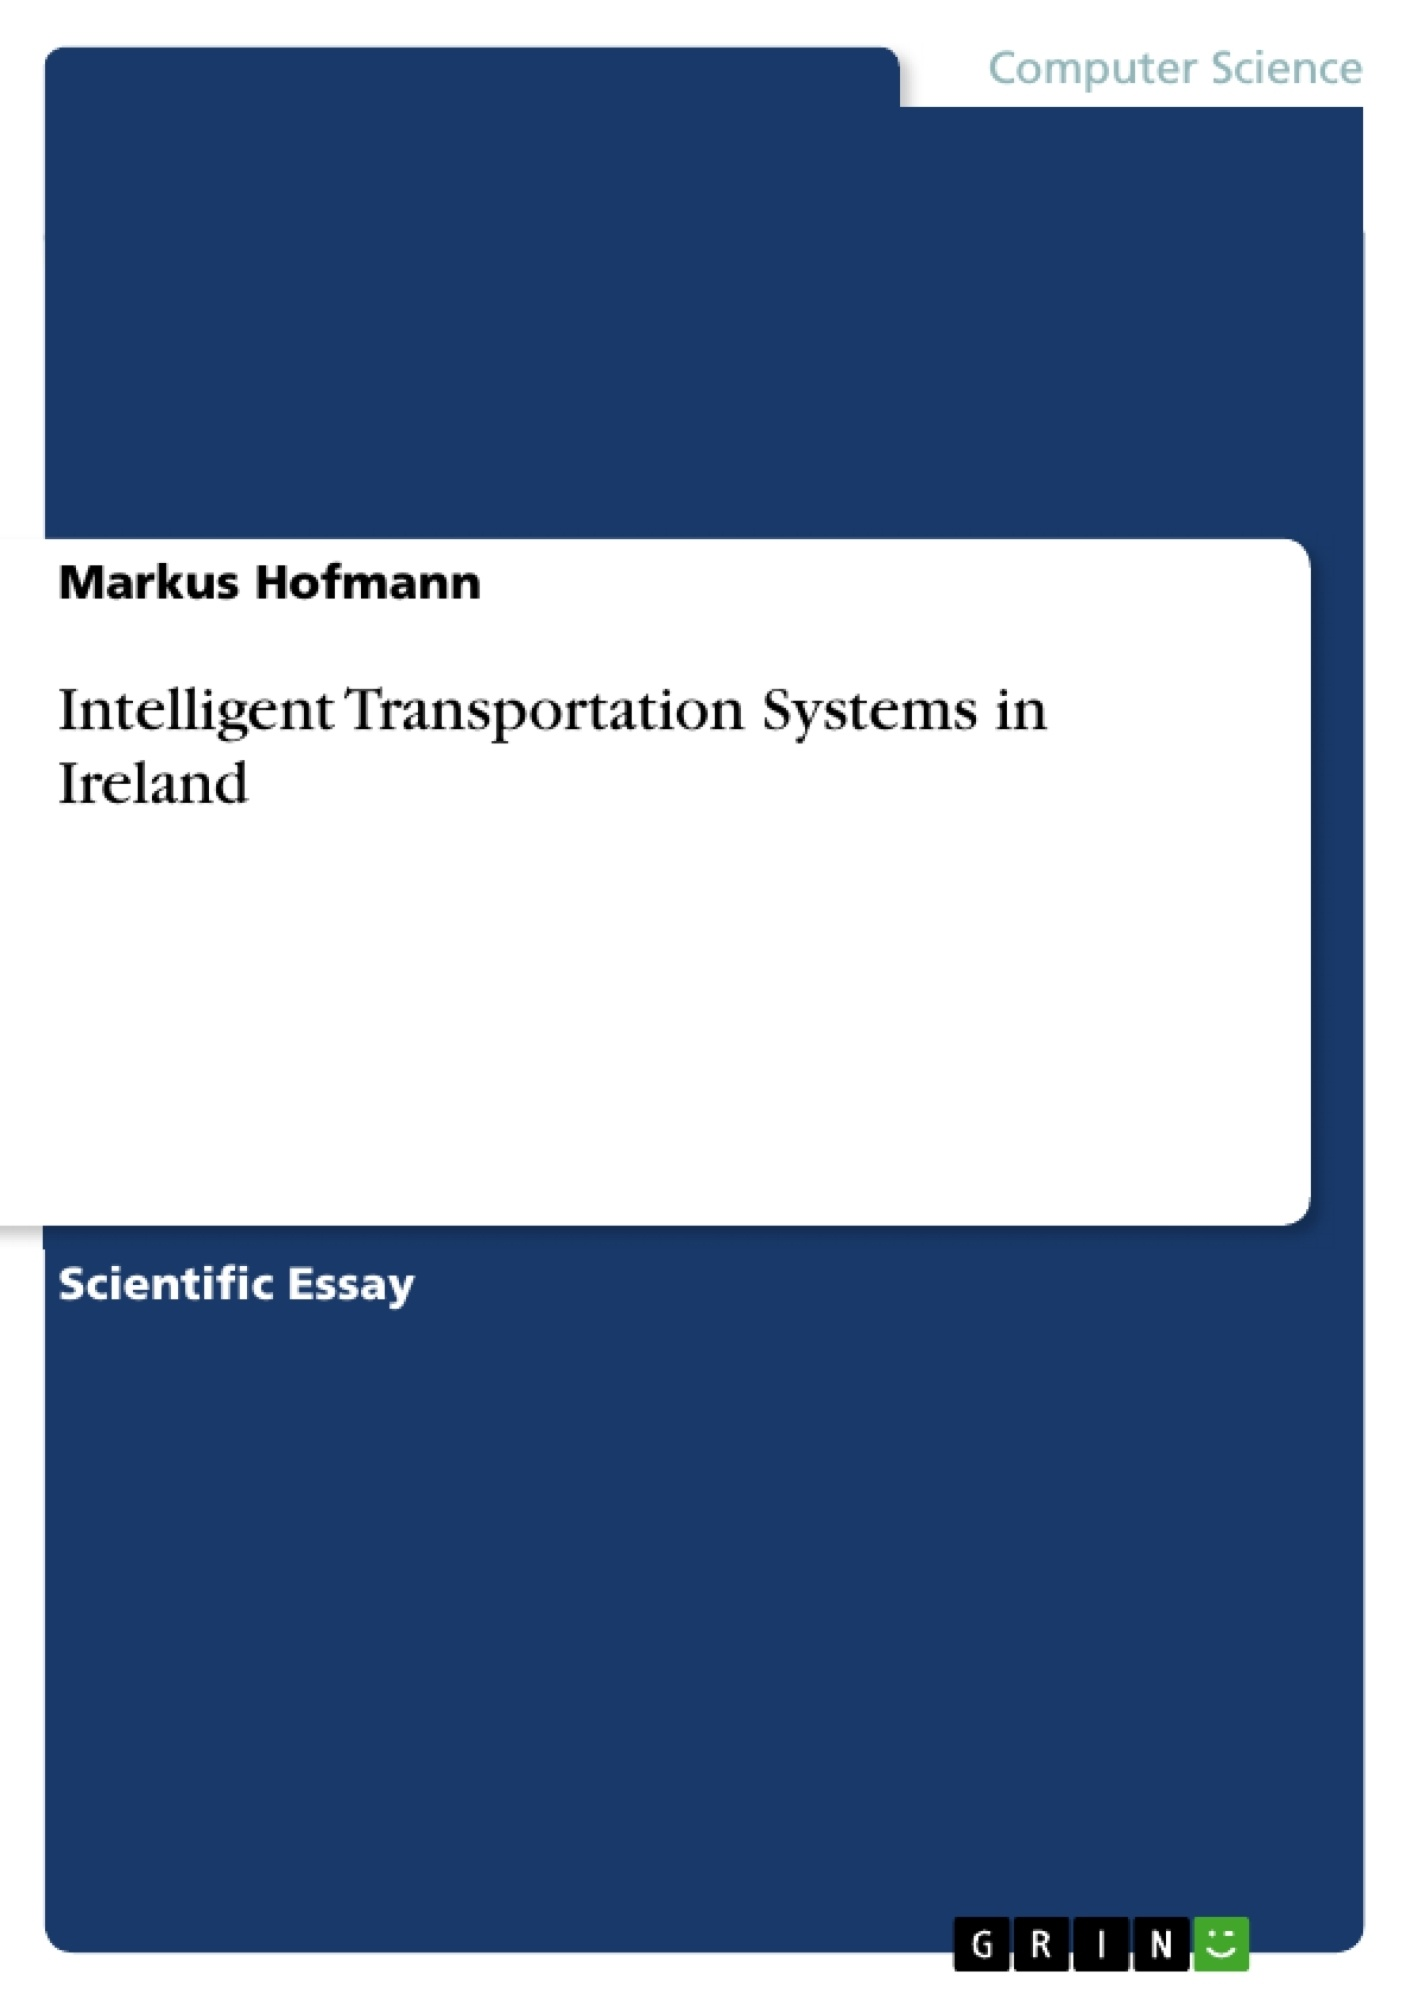 Title: Intelligent Transportation Systems in Ireland